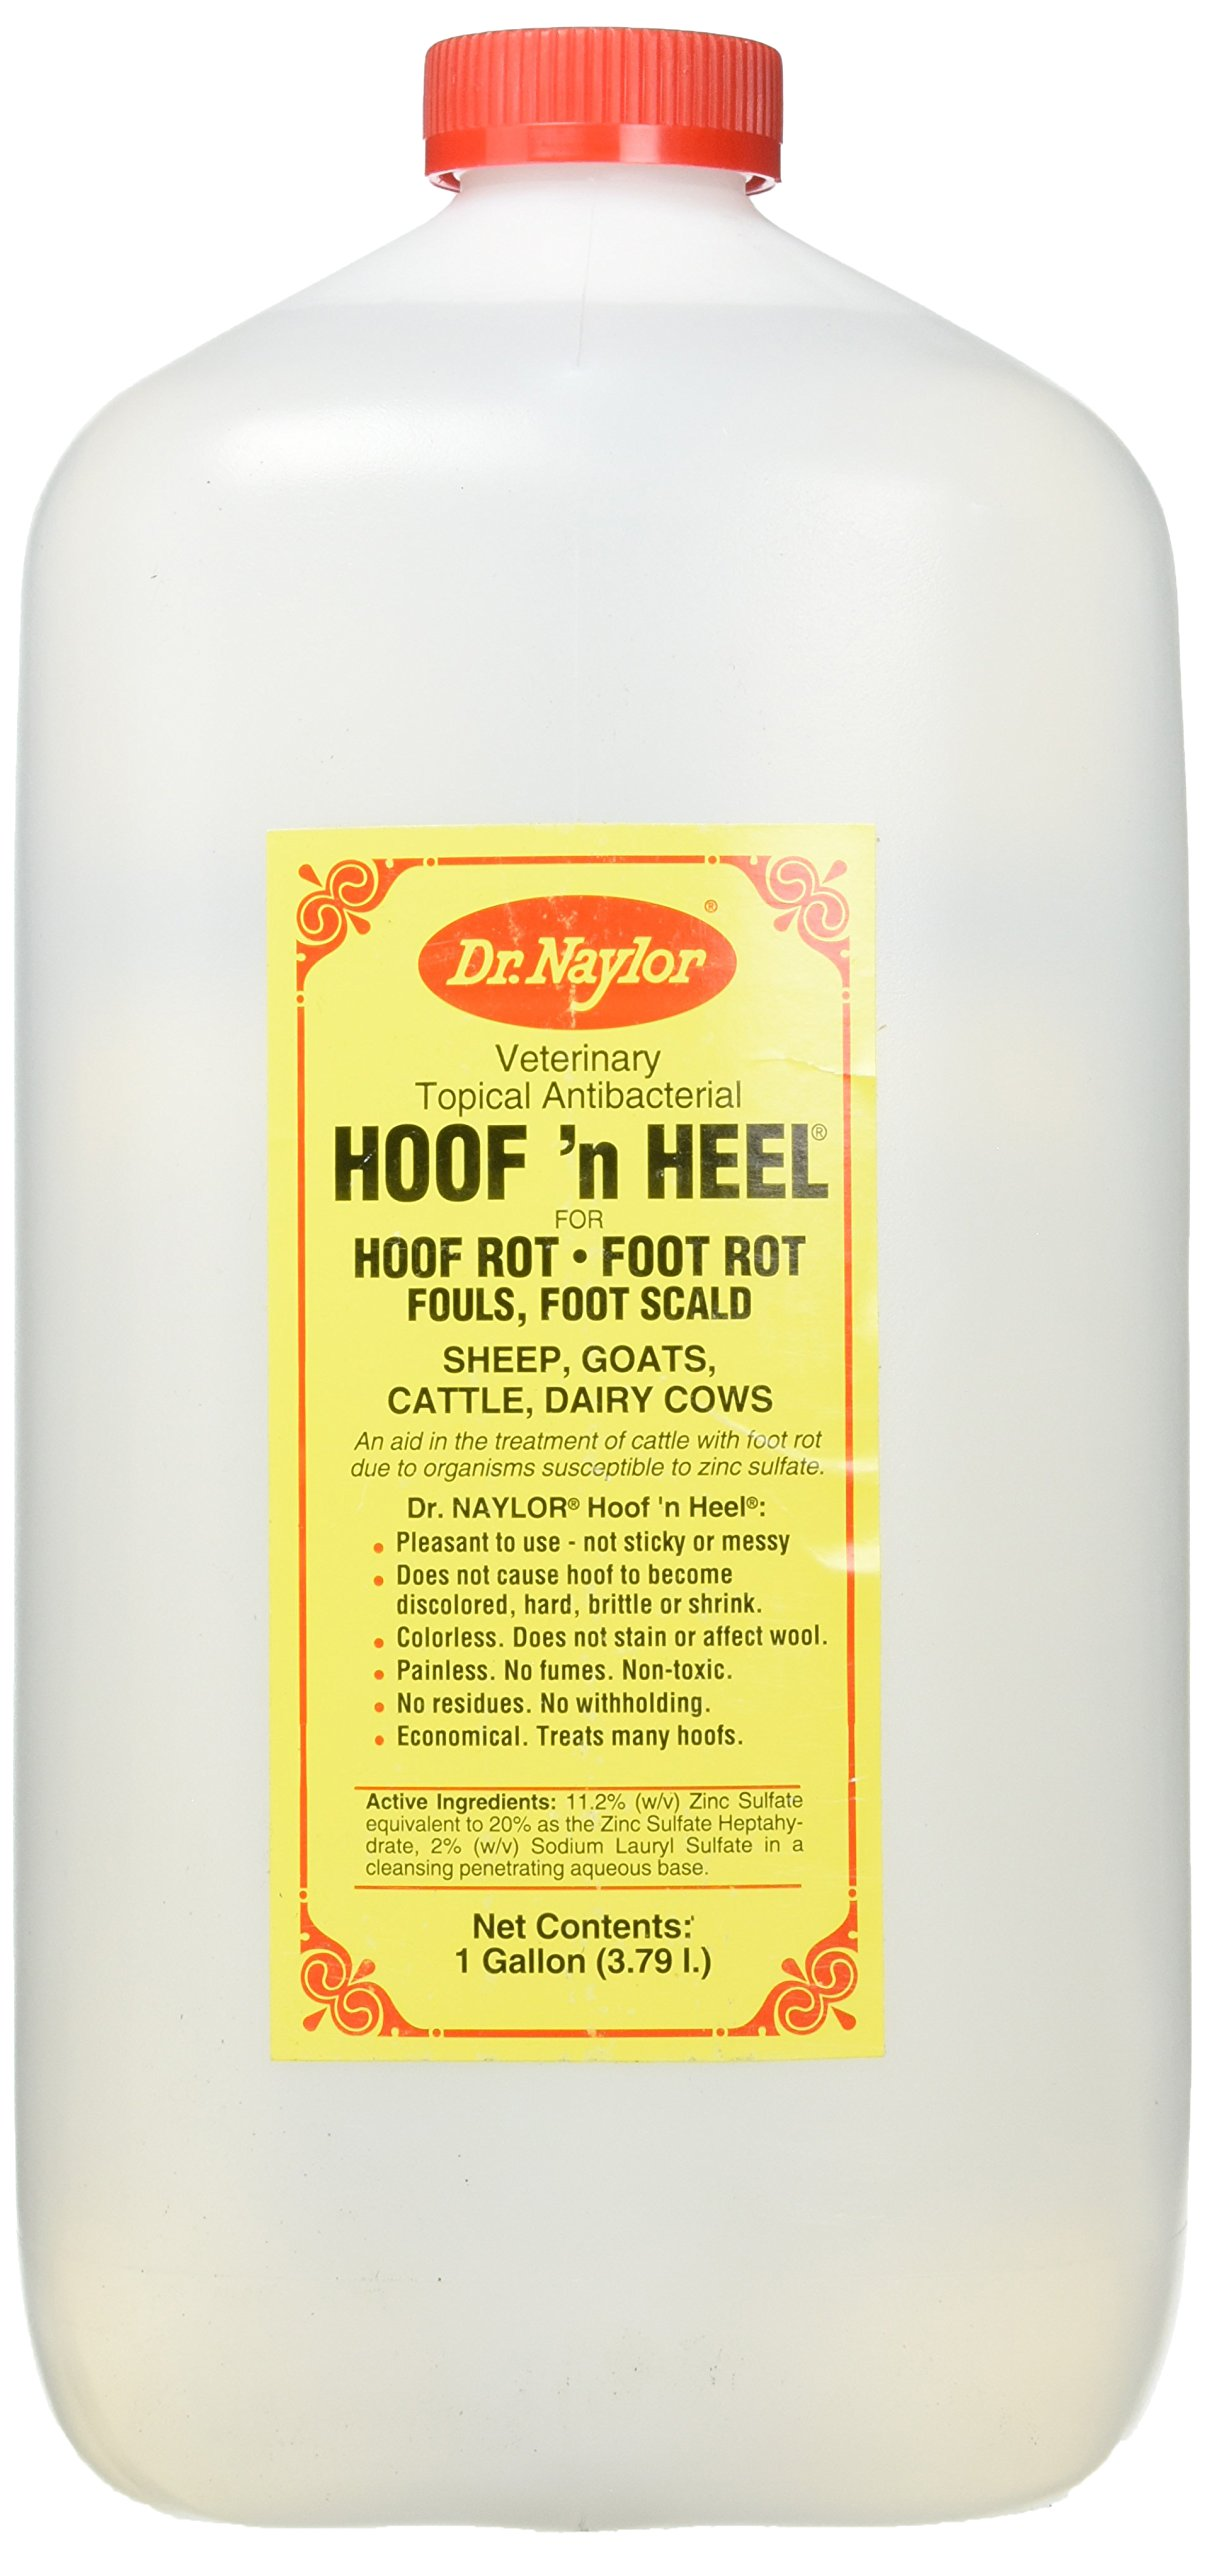 Dr. Naylor Hoof n' Heel (1 Gal ) - Traditional Foot Rot Treatment by Dr. Naylor